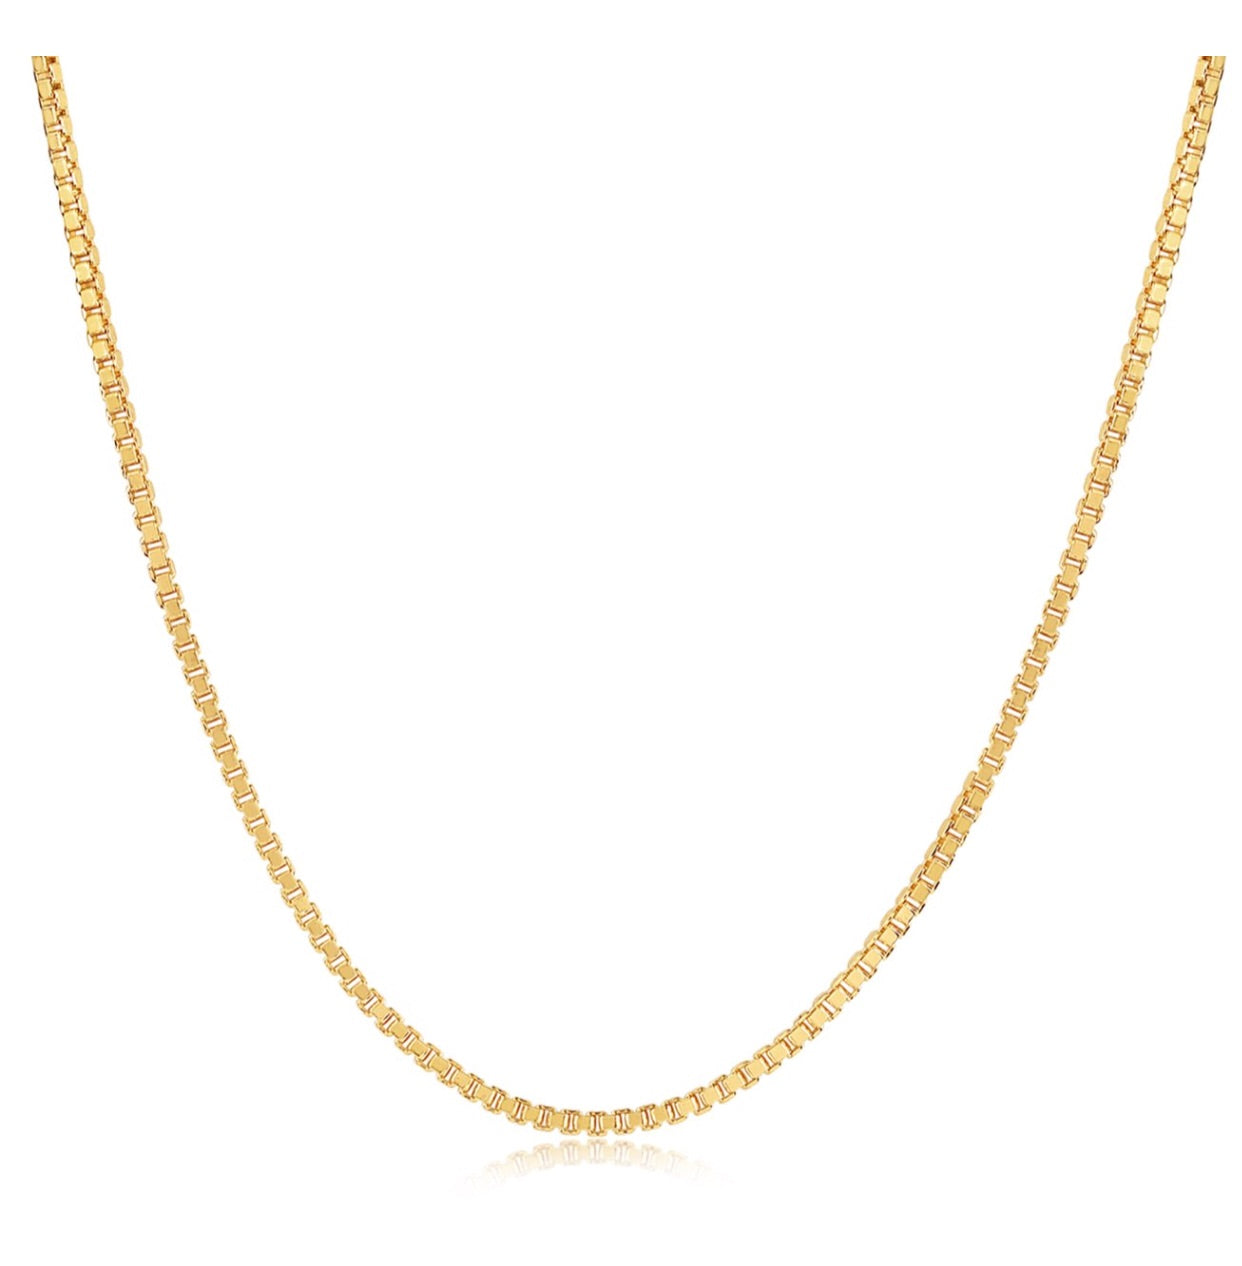 Venetian Chain Necklace